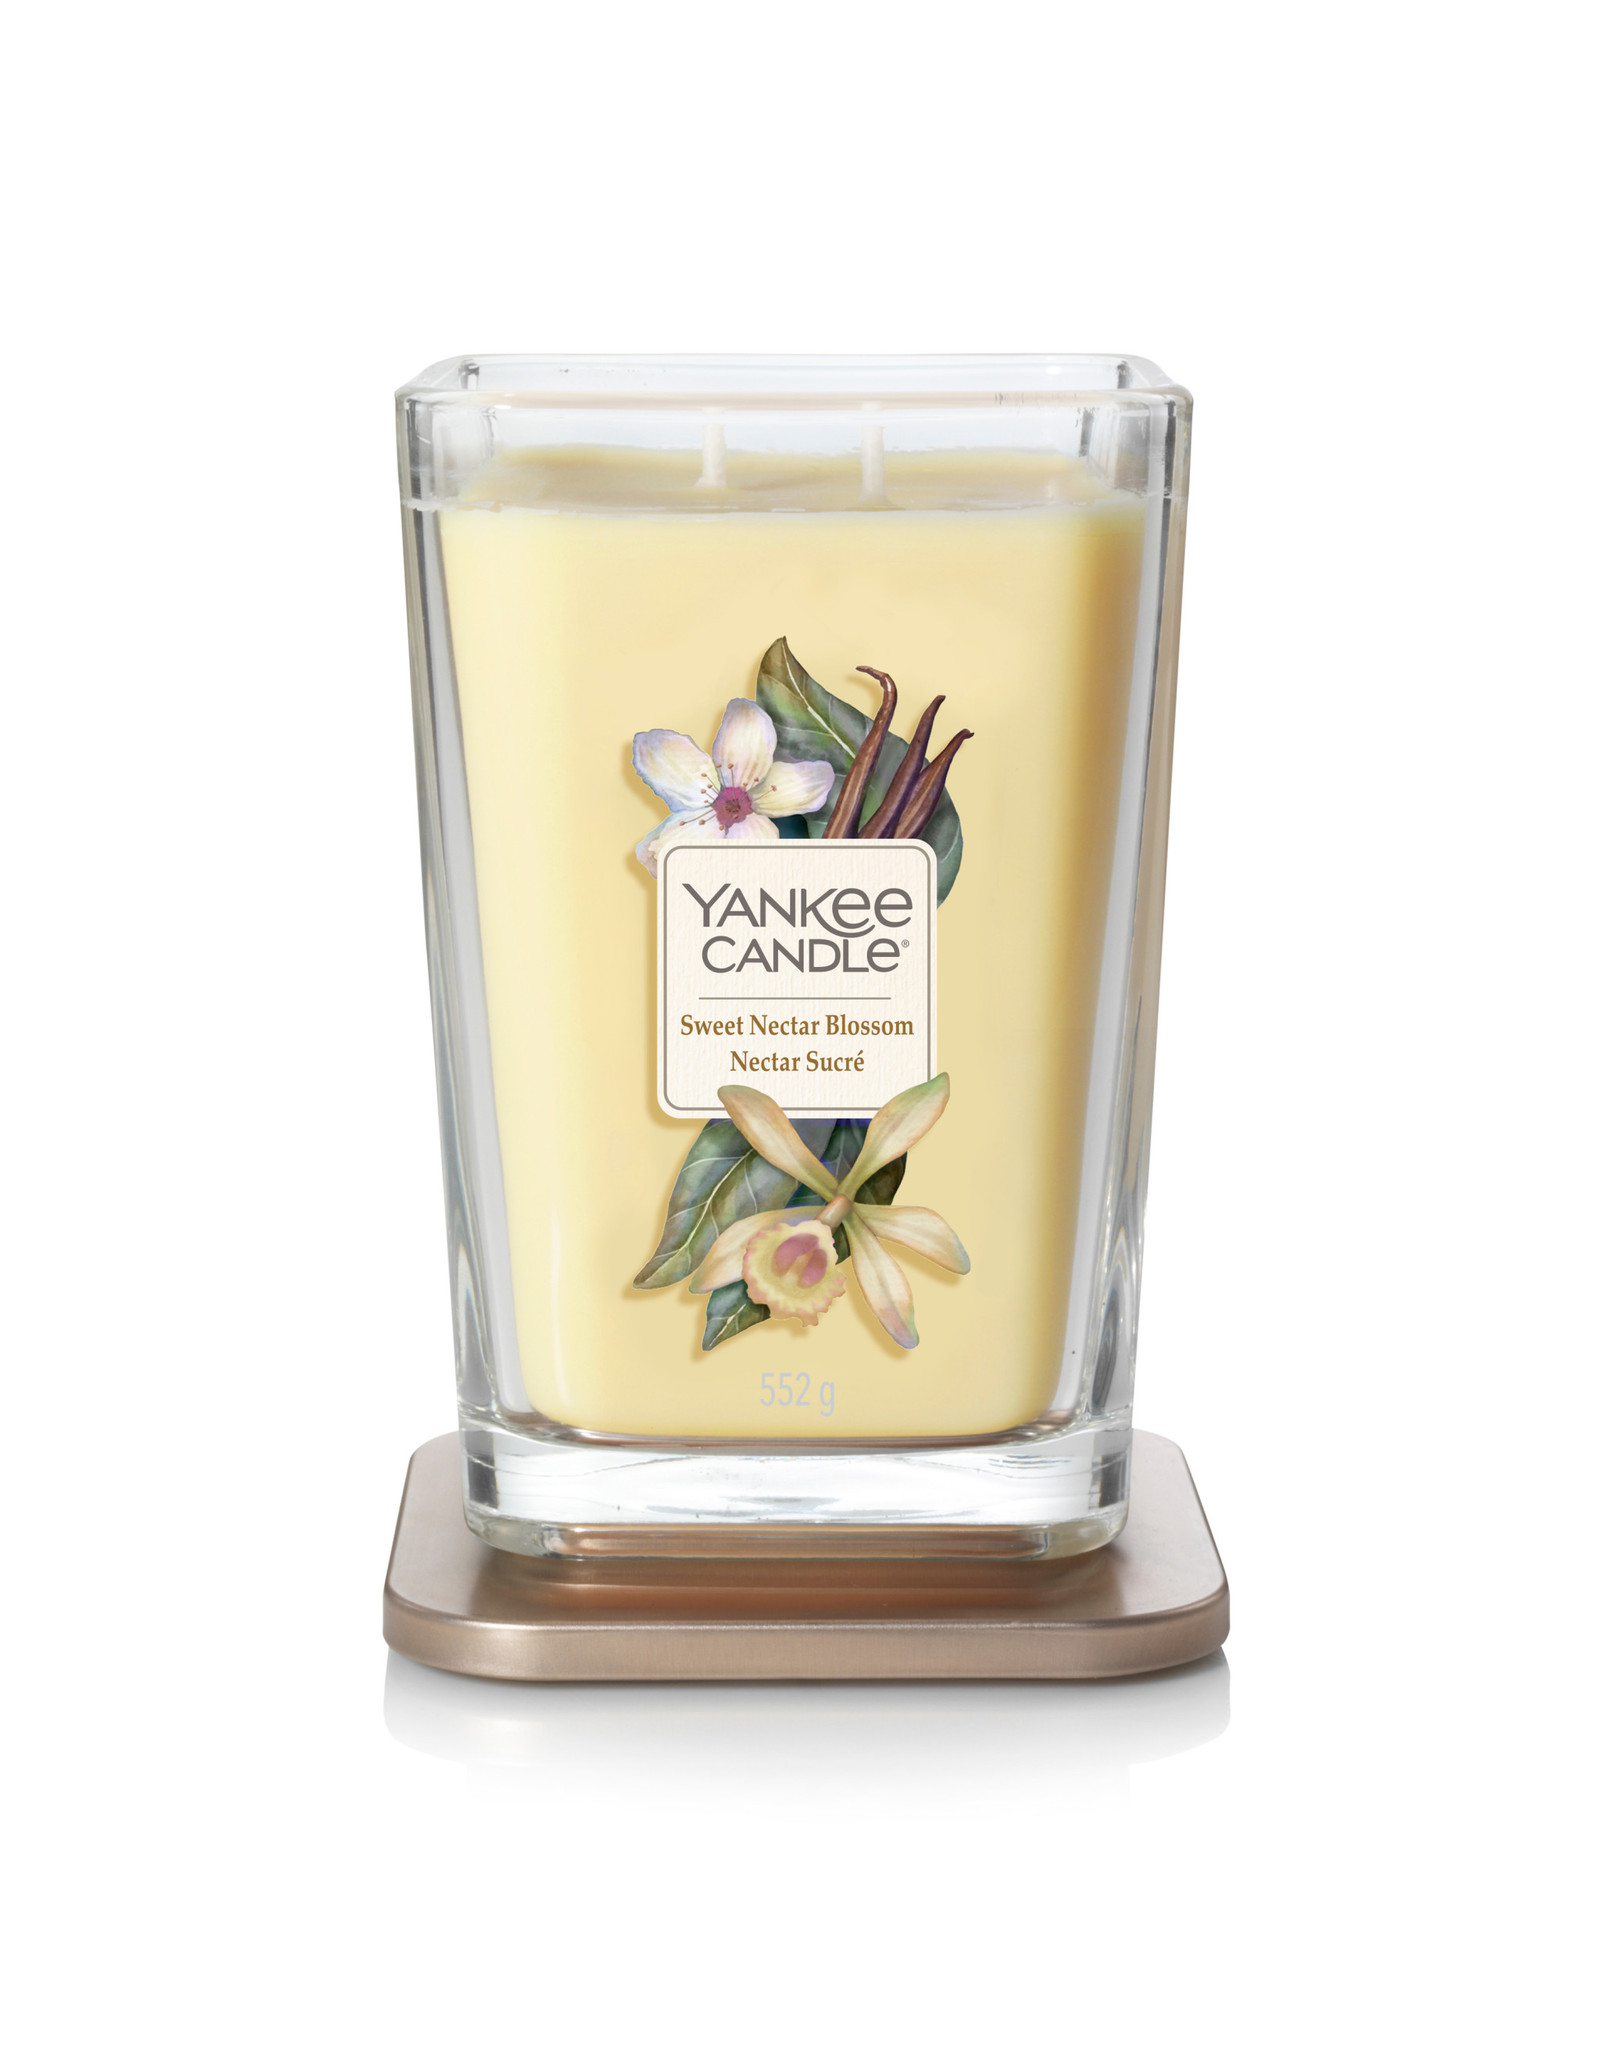 Yankee Candle Sweet Nectar Blossom -  Large Vessel